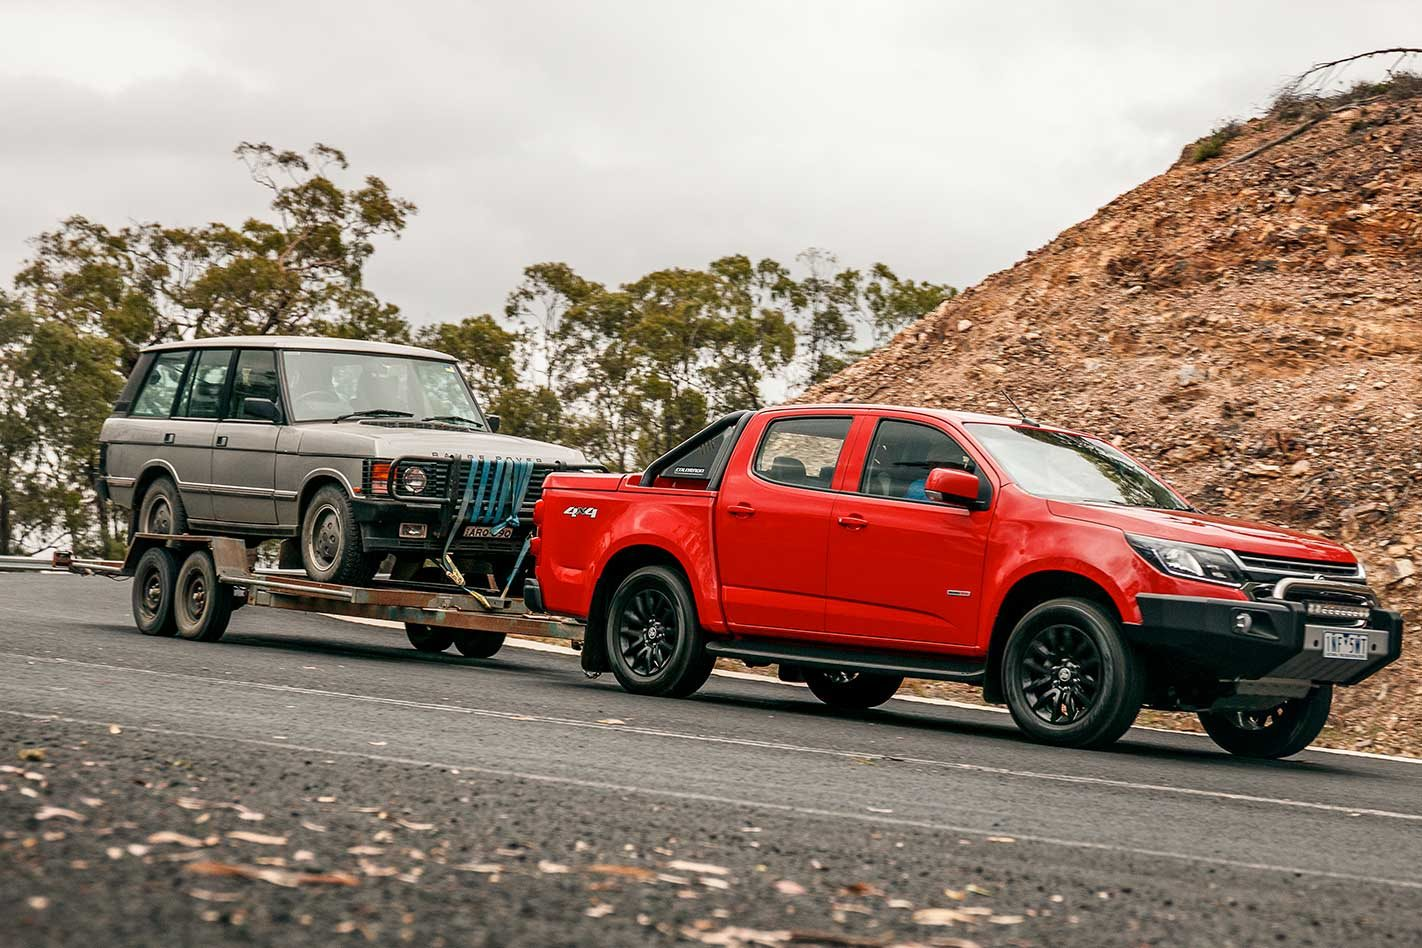 What makes a good tow vehicle